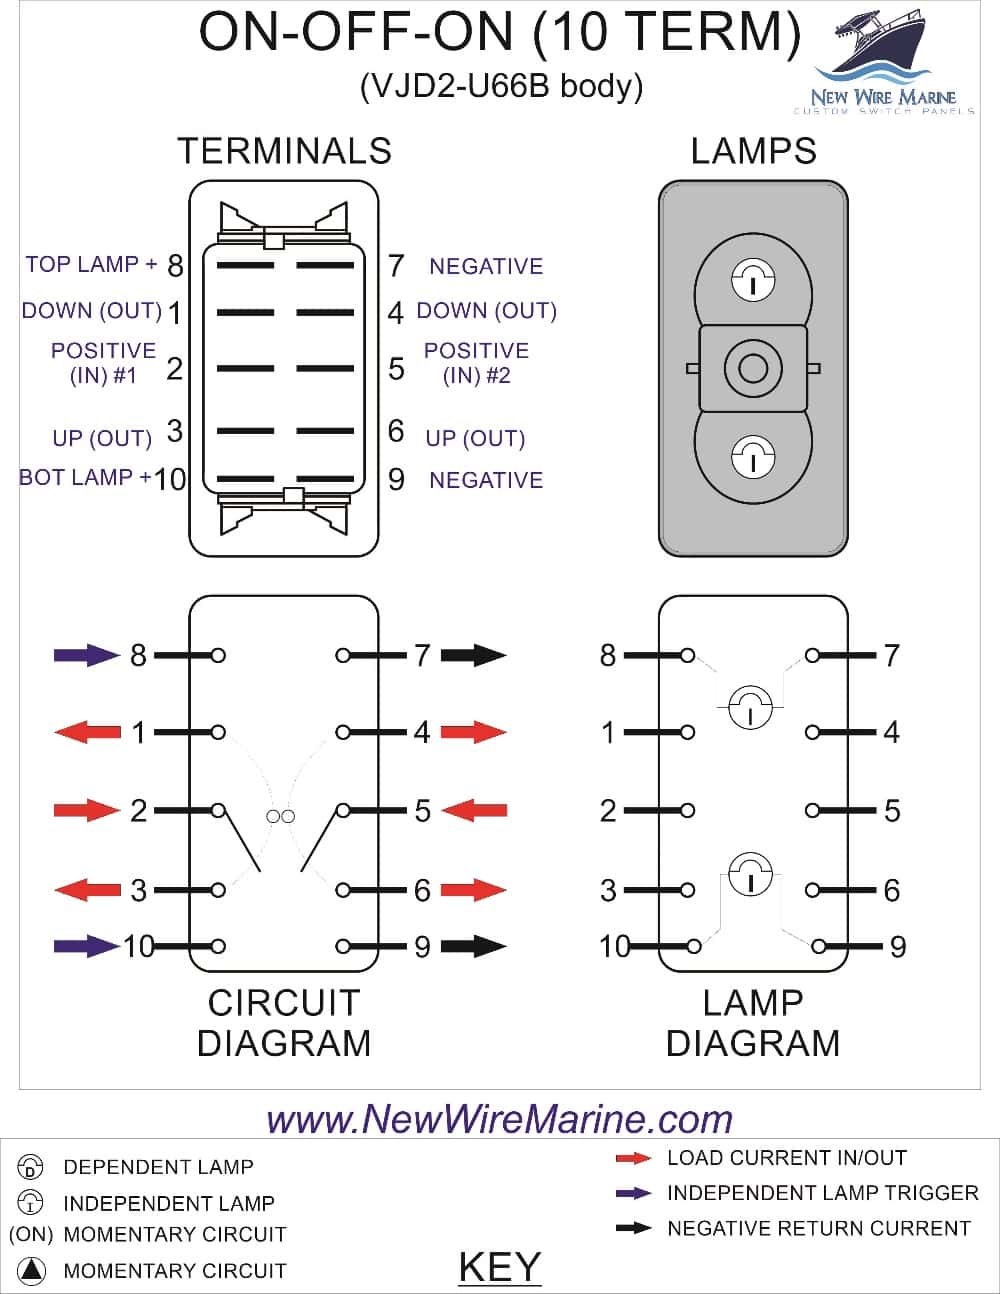 dpst rocker switch wiring diagram Download-ON OFF Backlit Rocker Switch Blue LED New Wire Marine And Carling 10 7-e